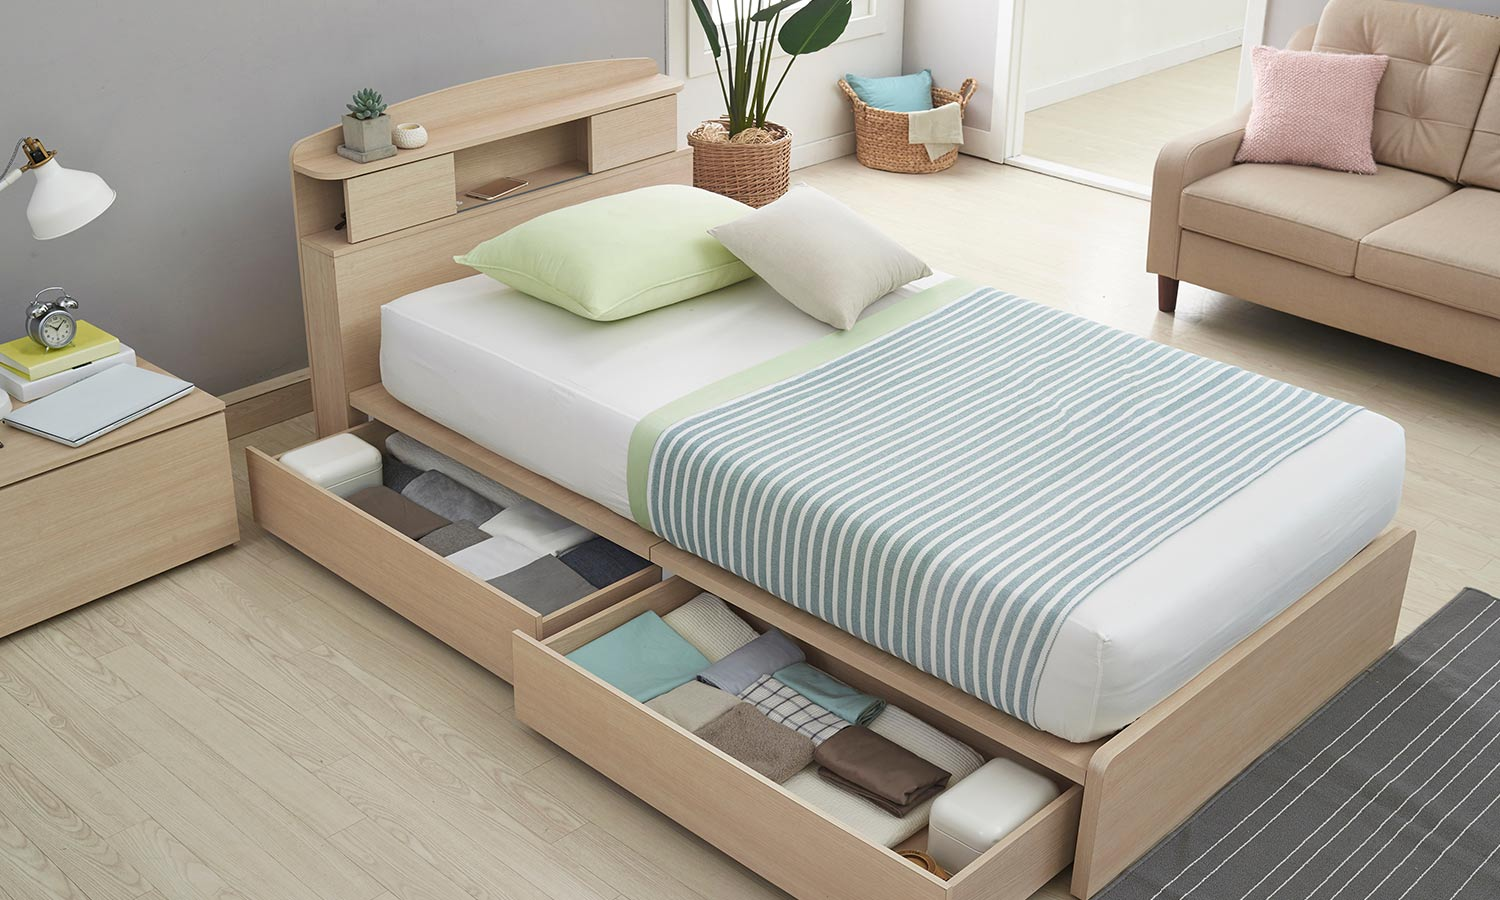 A twin bed with pullout drawers underneath. The drawers are full of